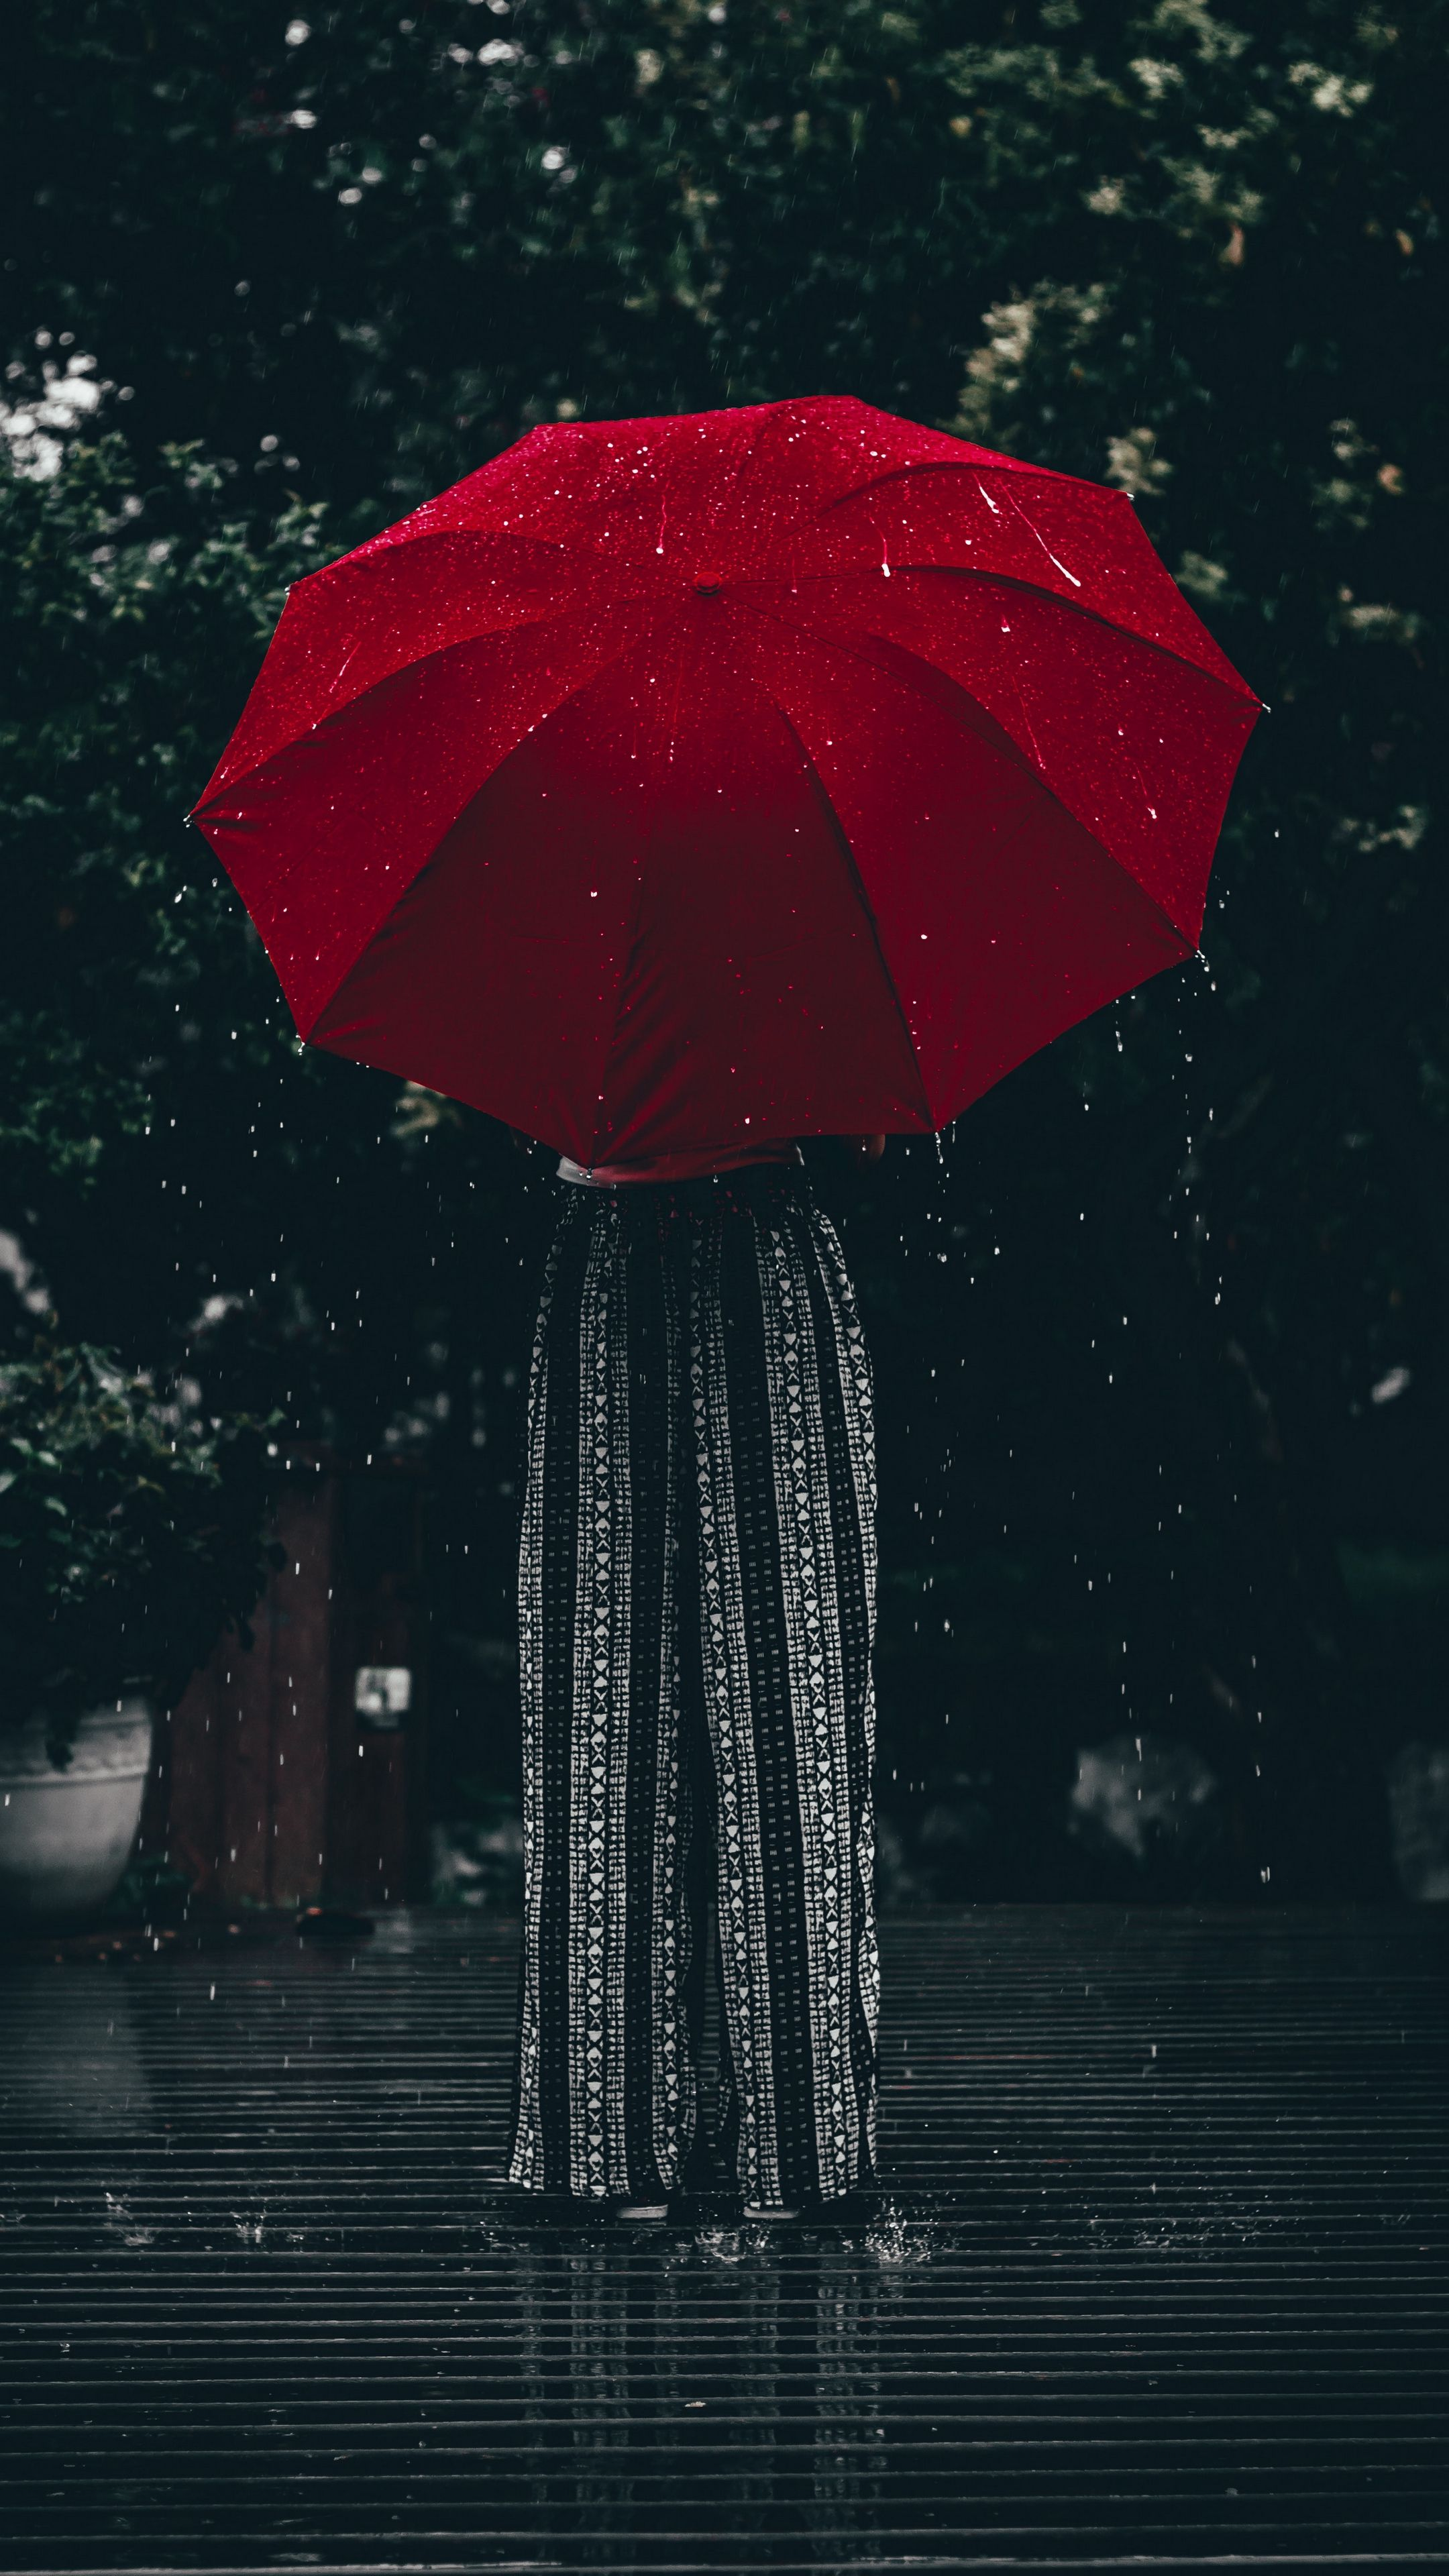 Emotions Umbrella Red Girl Android Wallpapers 4k Hd Red Umbrella Umbrella Photography Rain Wallpapers